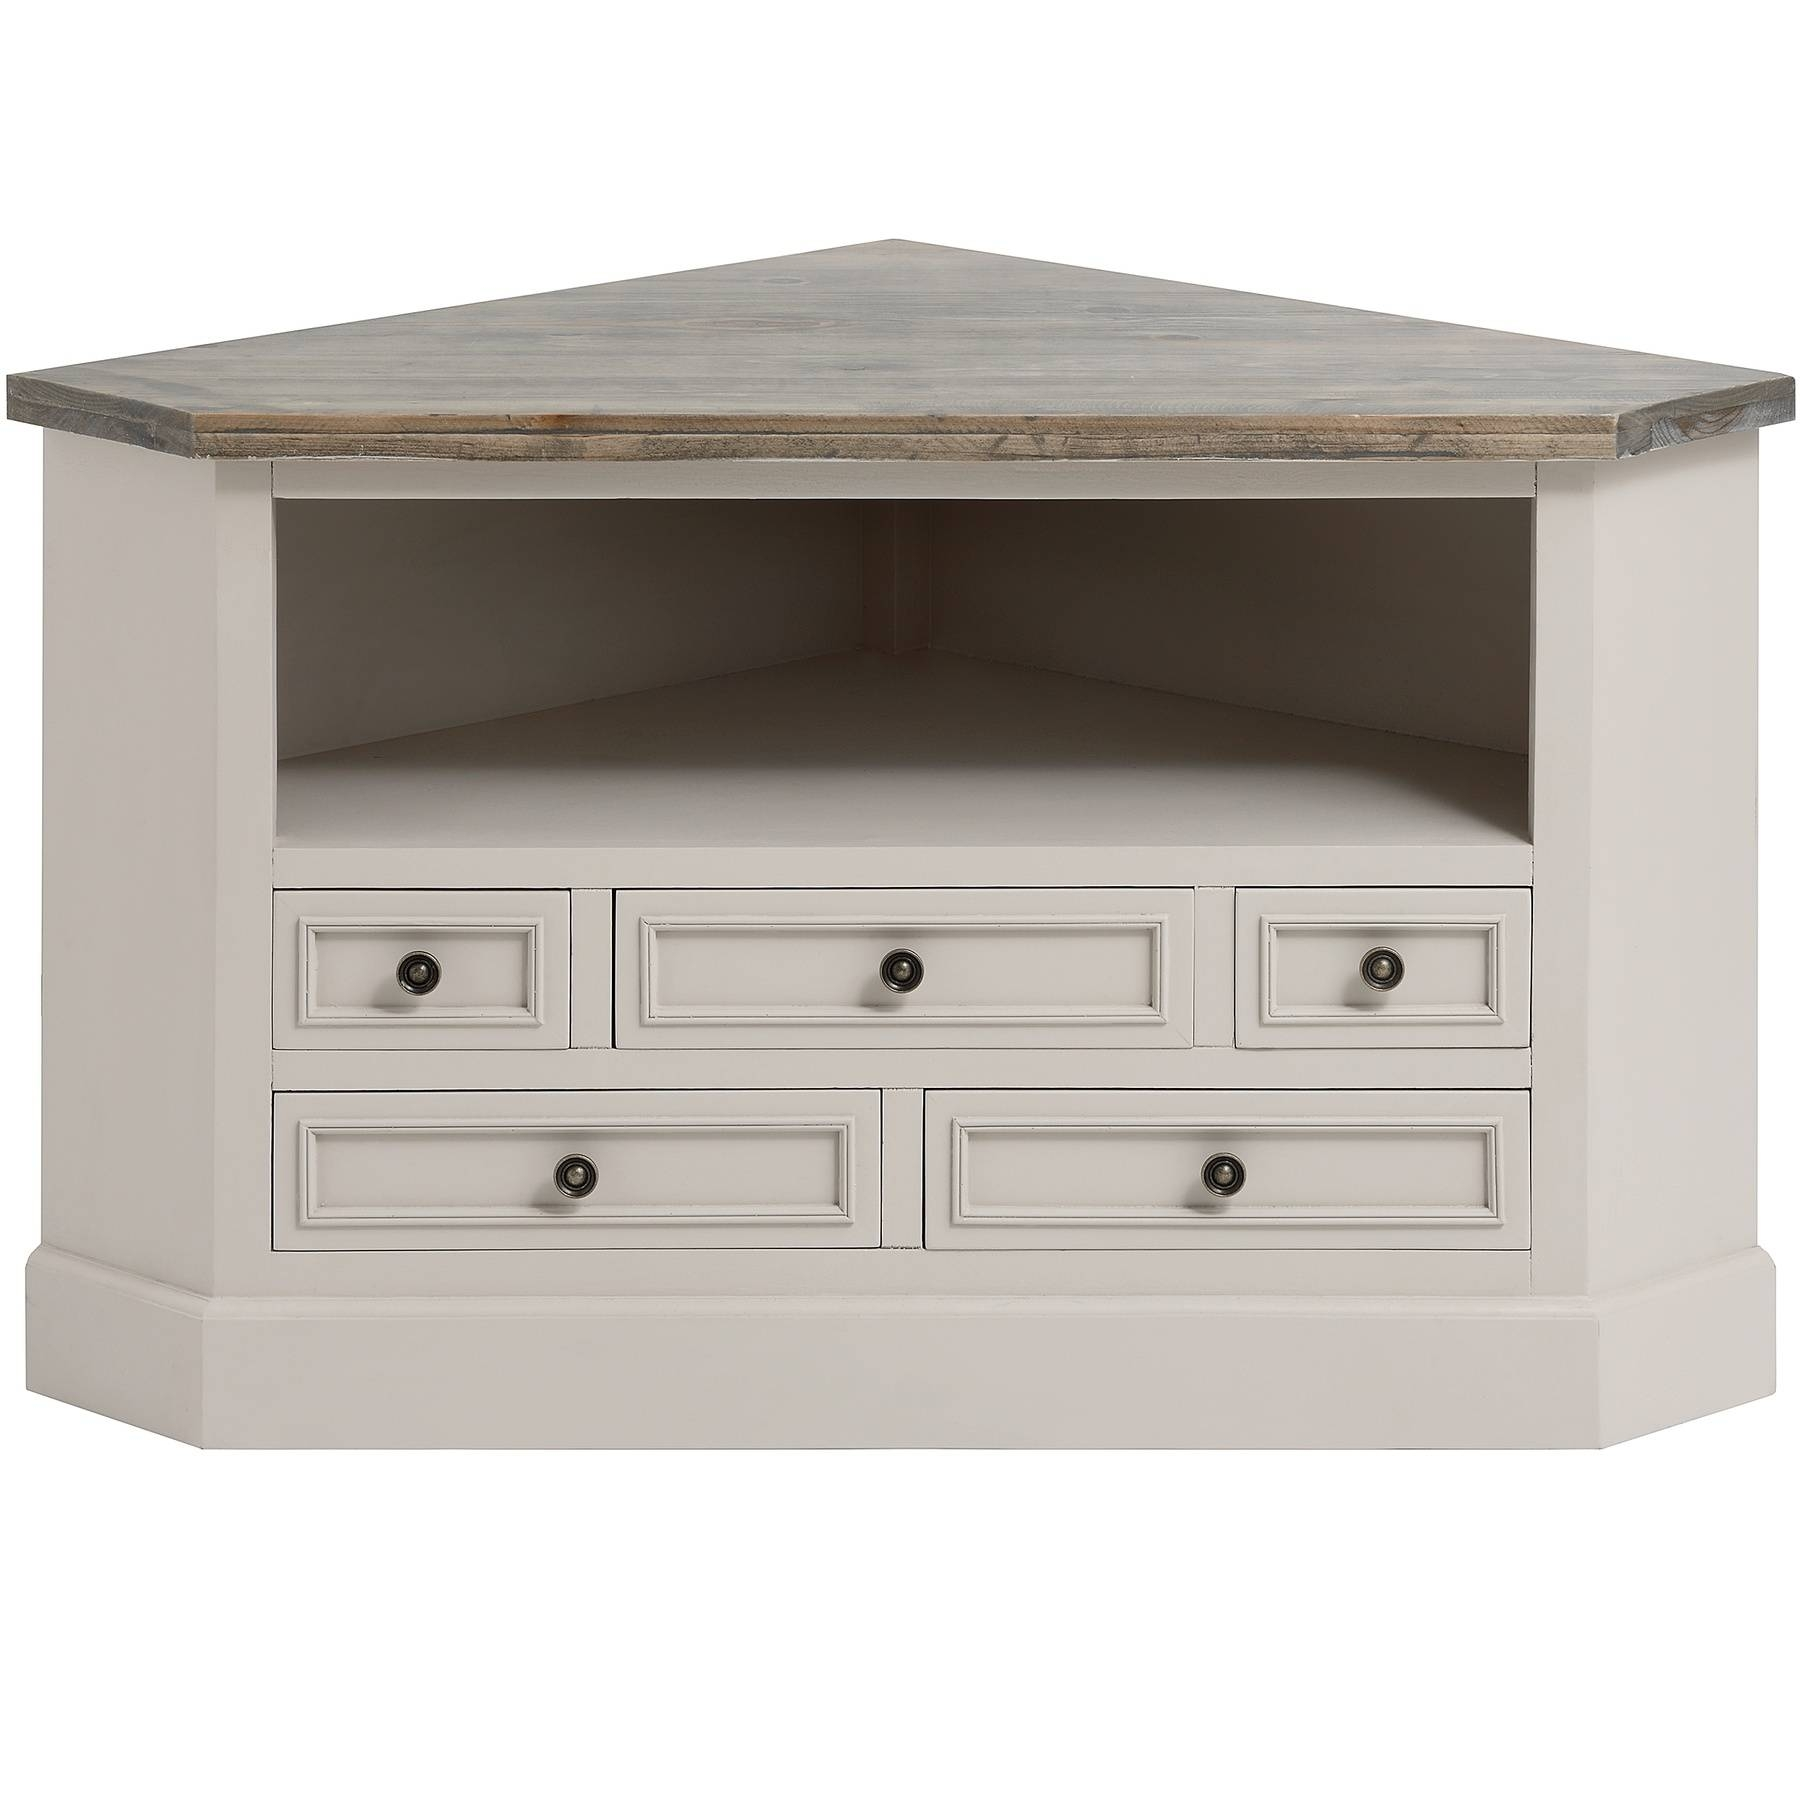 The Studley Collection Corner Tv Unit | From Baytree Interiors in Corner Tv Units (Image 12 of 15)